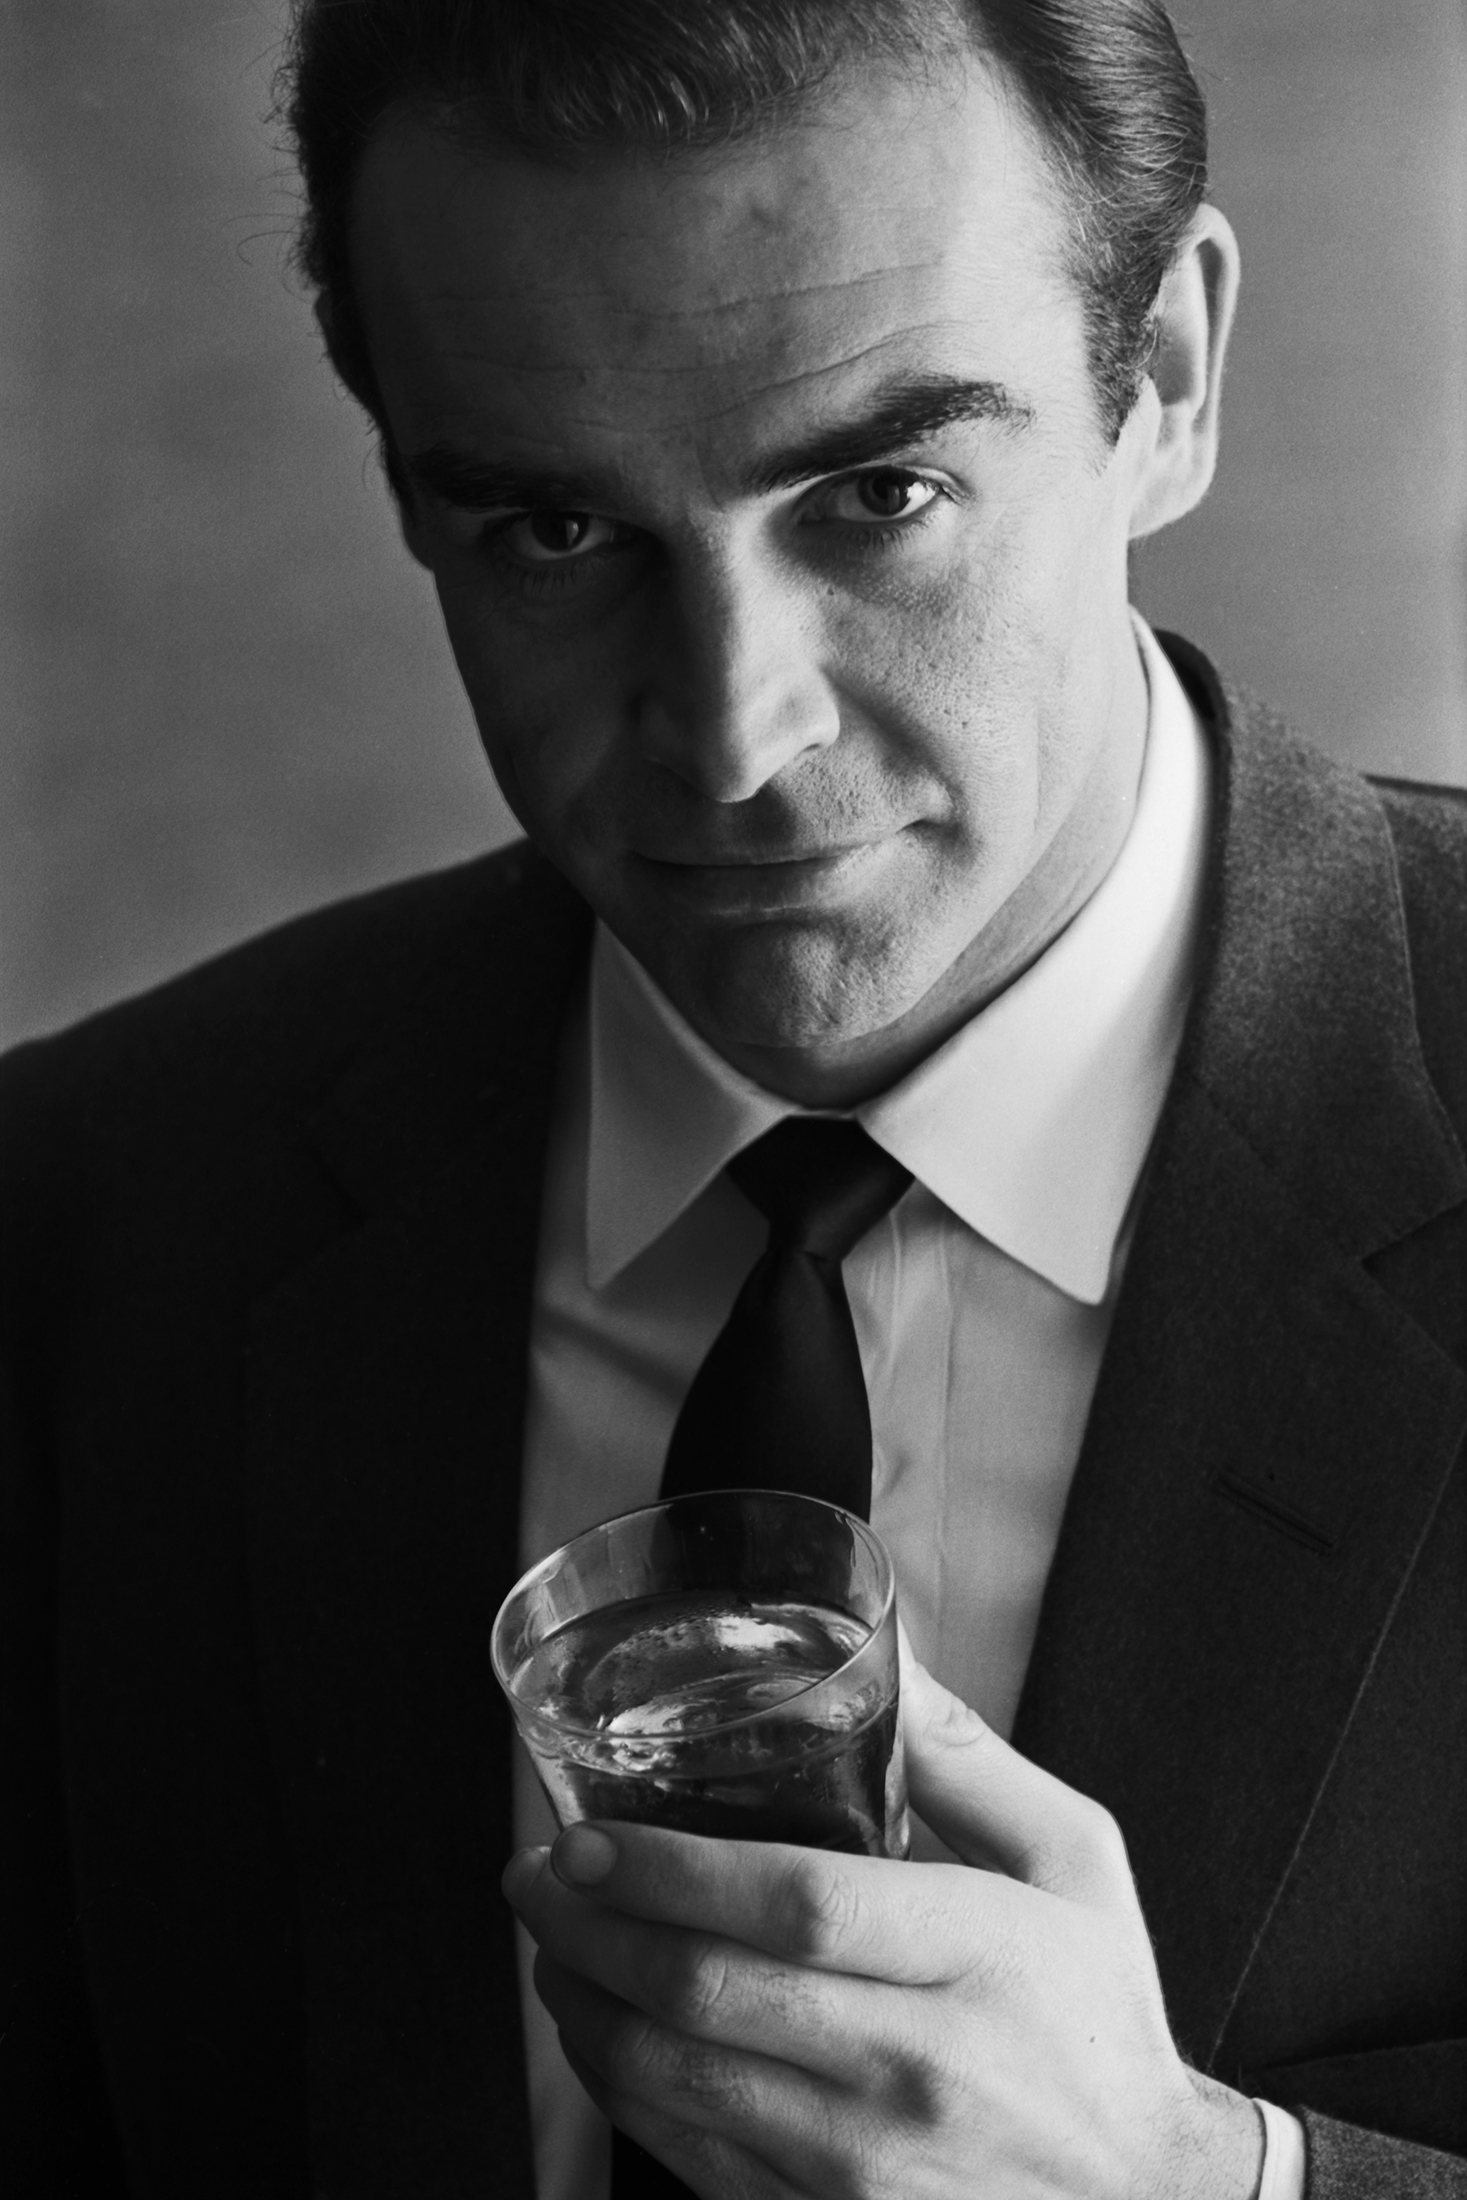 Sean Connery in a 1962 advertising shoot for Smirnoff Vodka.